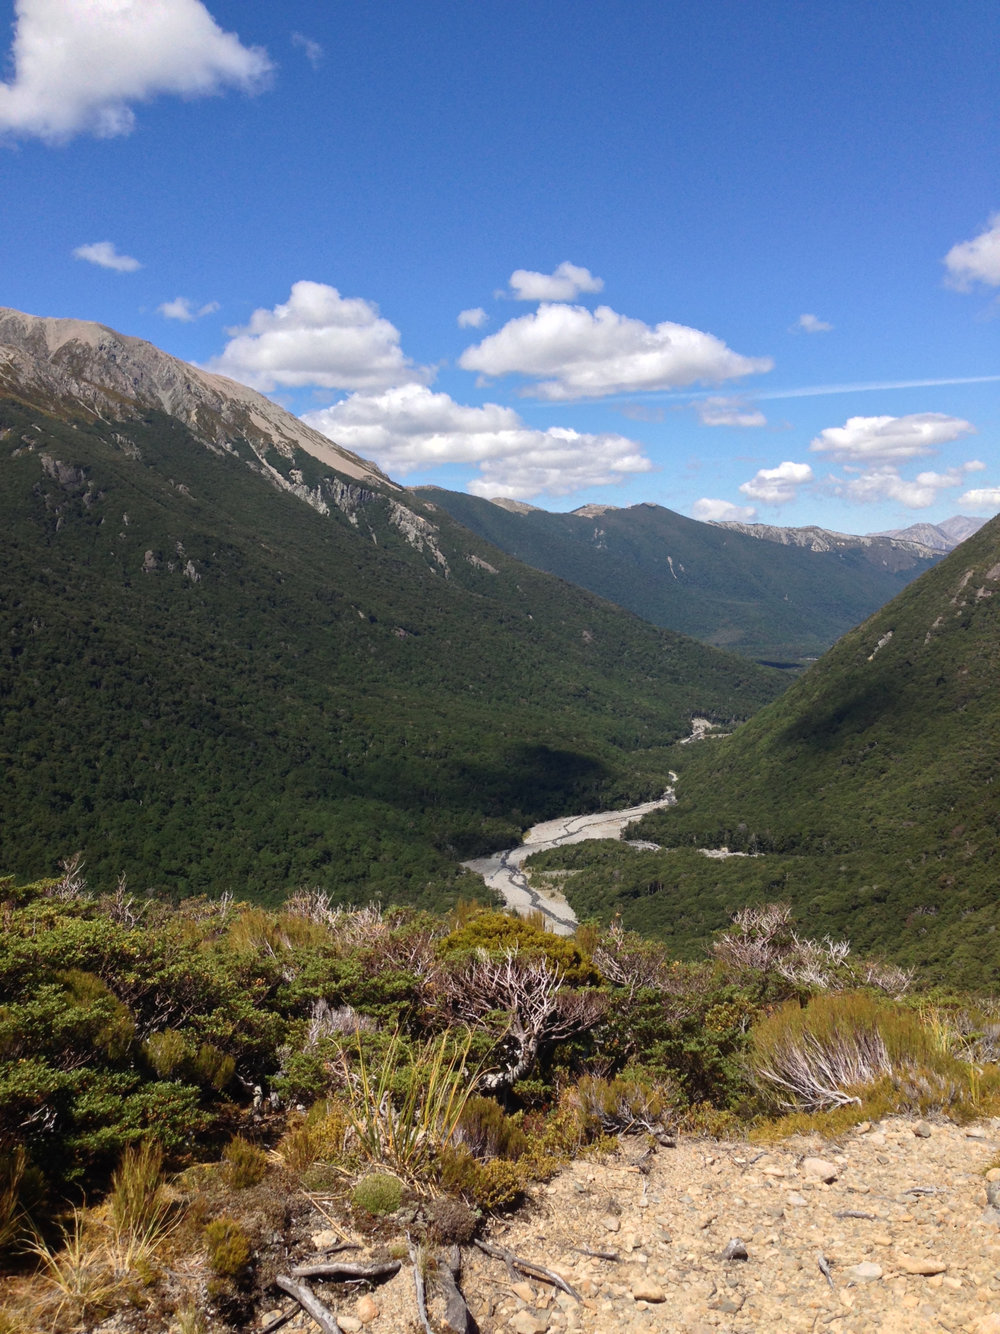 Halfway up the mountainside - Hawdon Valley, near Arthur's Pass.